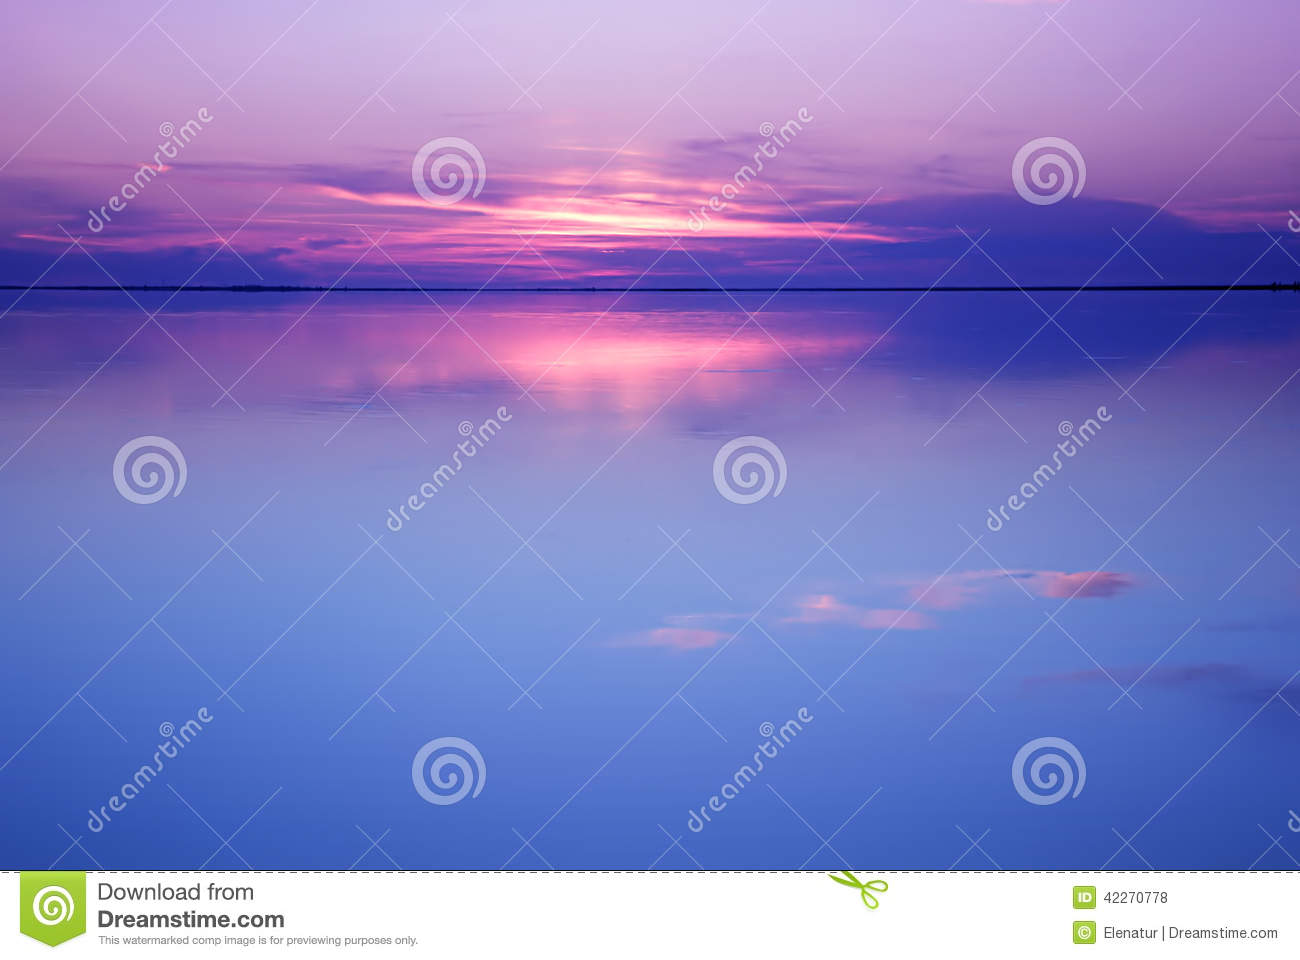 Tranquil Colors Tranquil Scenery In Blue And Pink Colorsstock Photo  Image